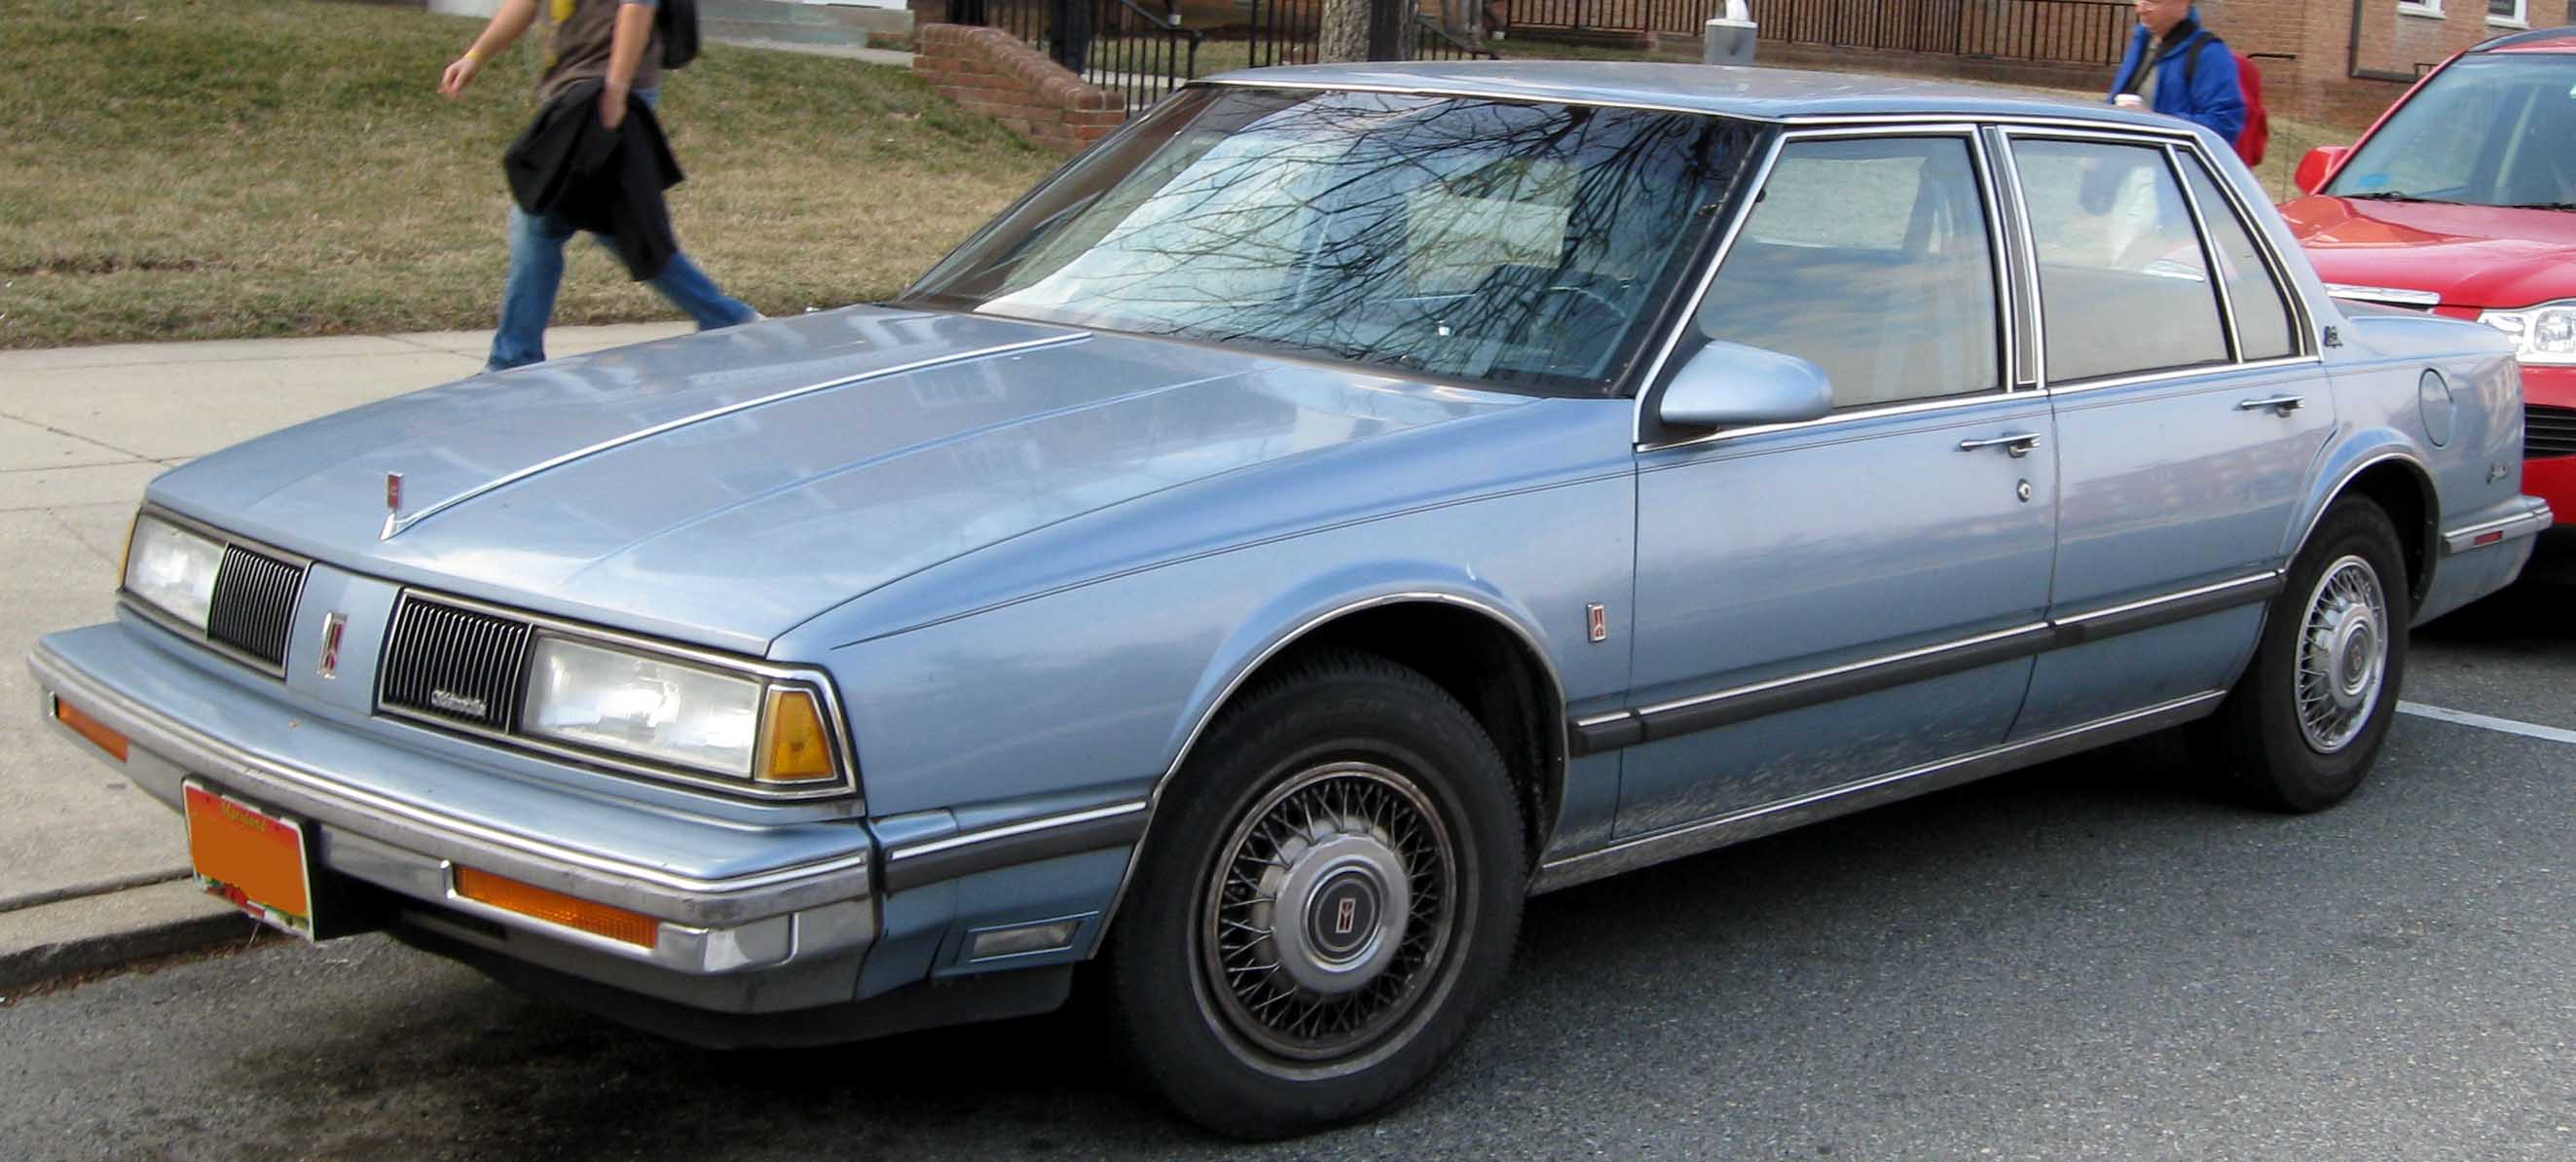 1986-89 Delta 88 sedan. This is a 1988 or 1989 model because the